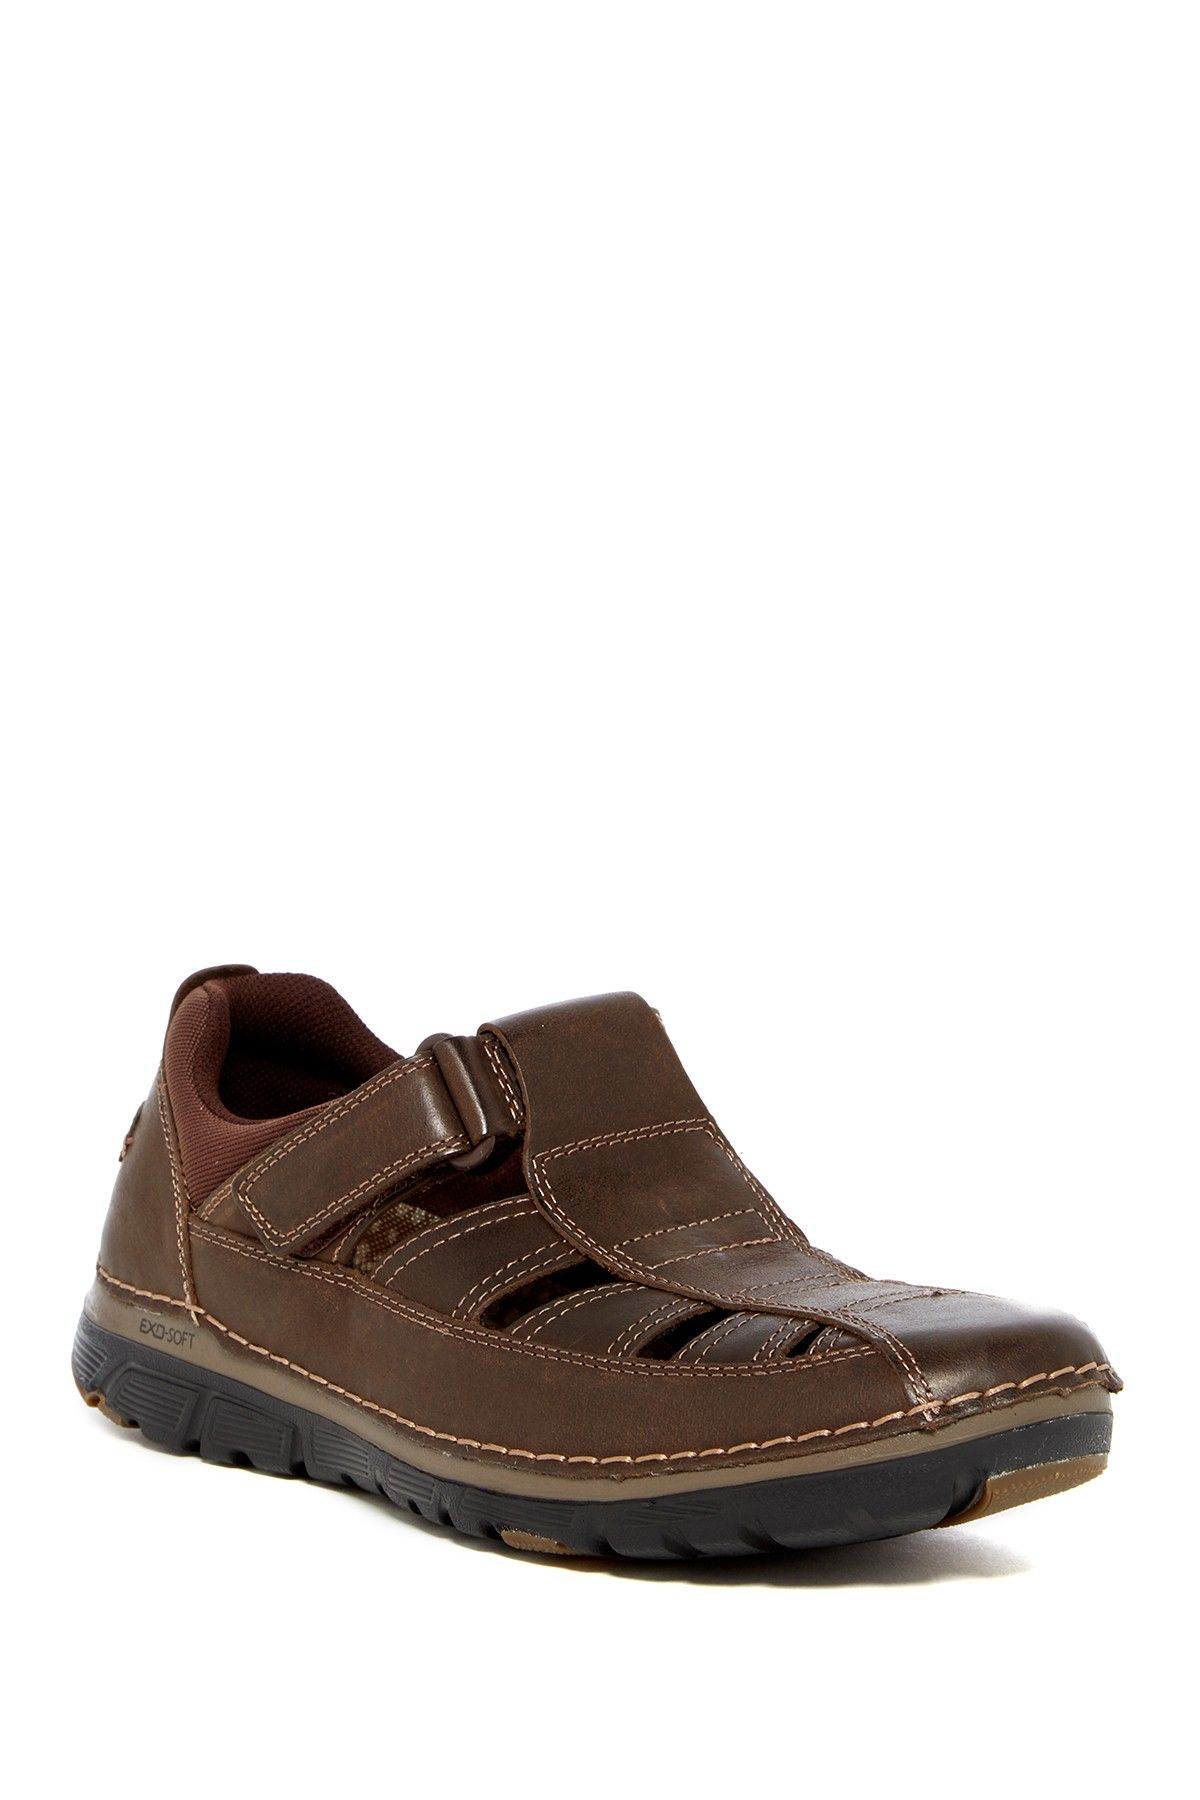 Zonecrush Fisherman Sandal